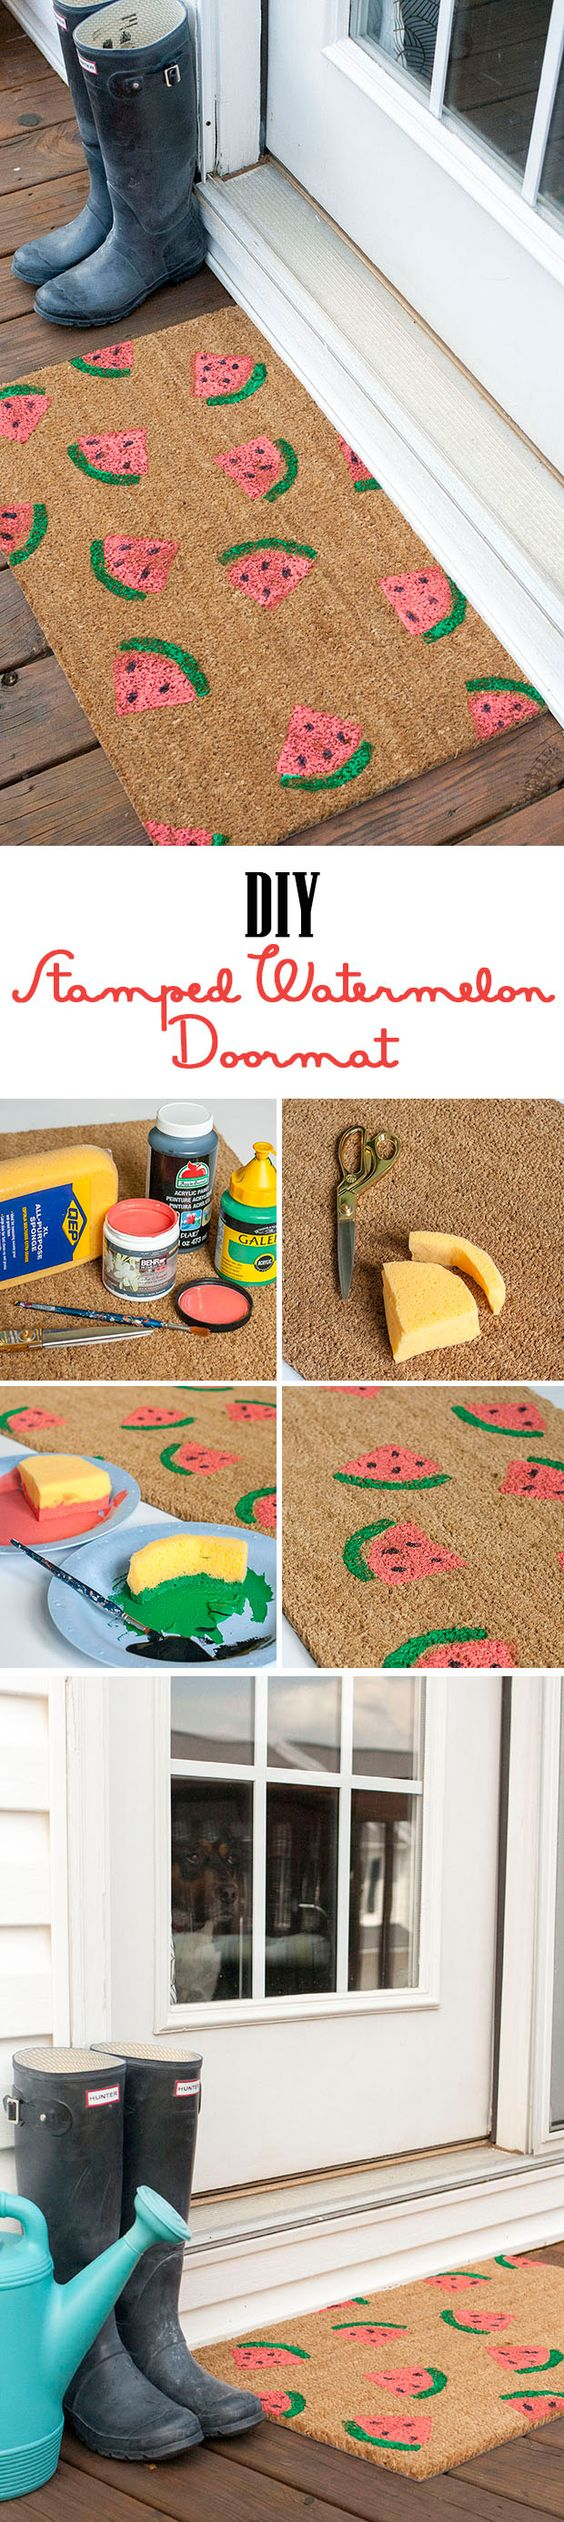 Easy Stamped DIY Watermelon Doormat.